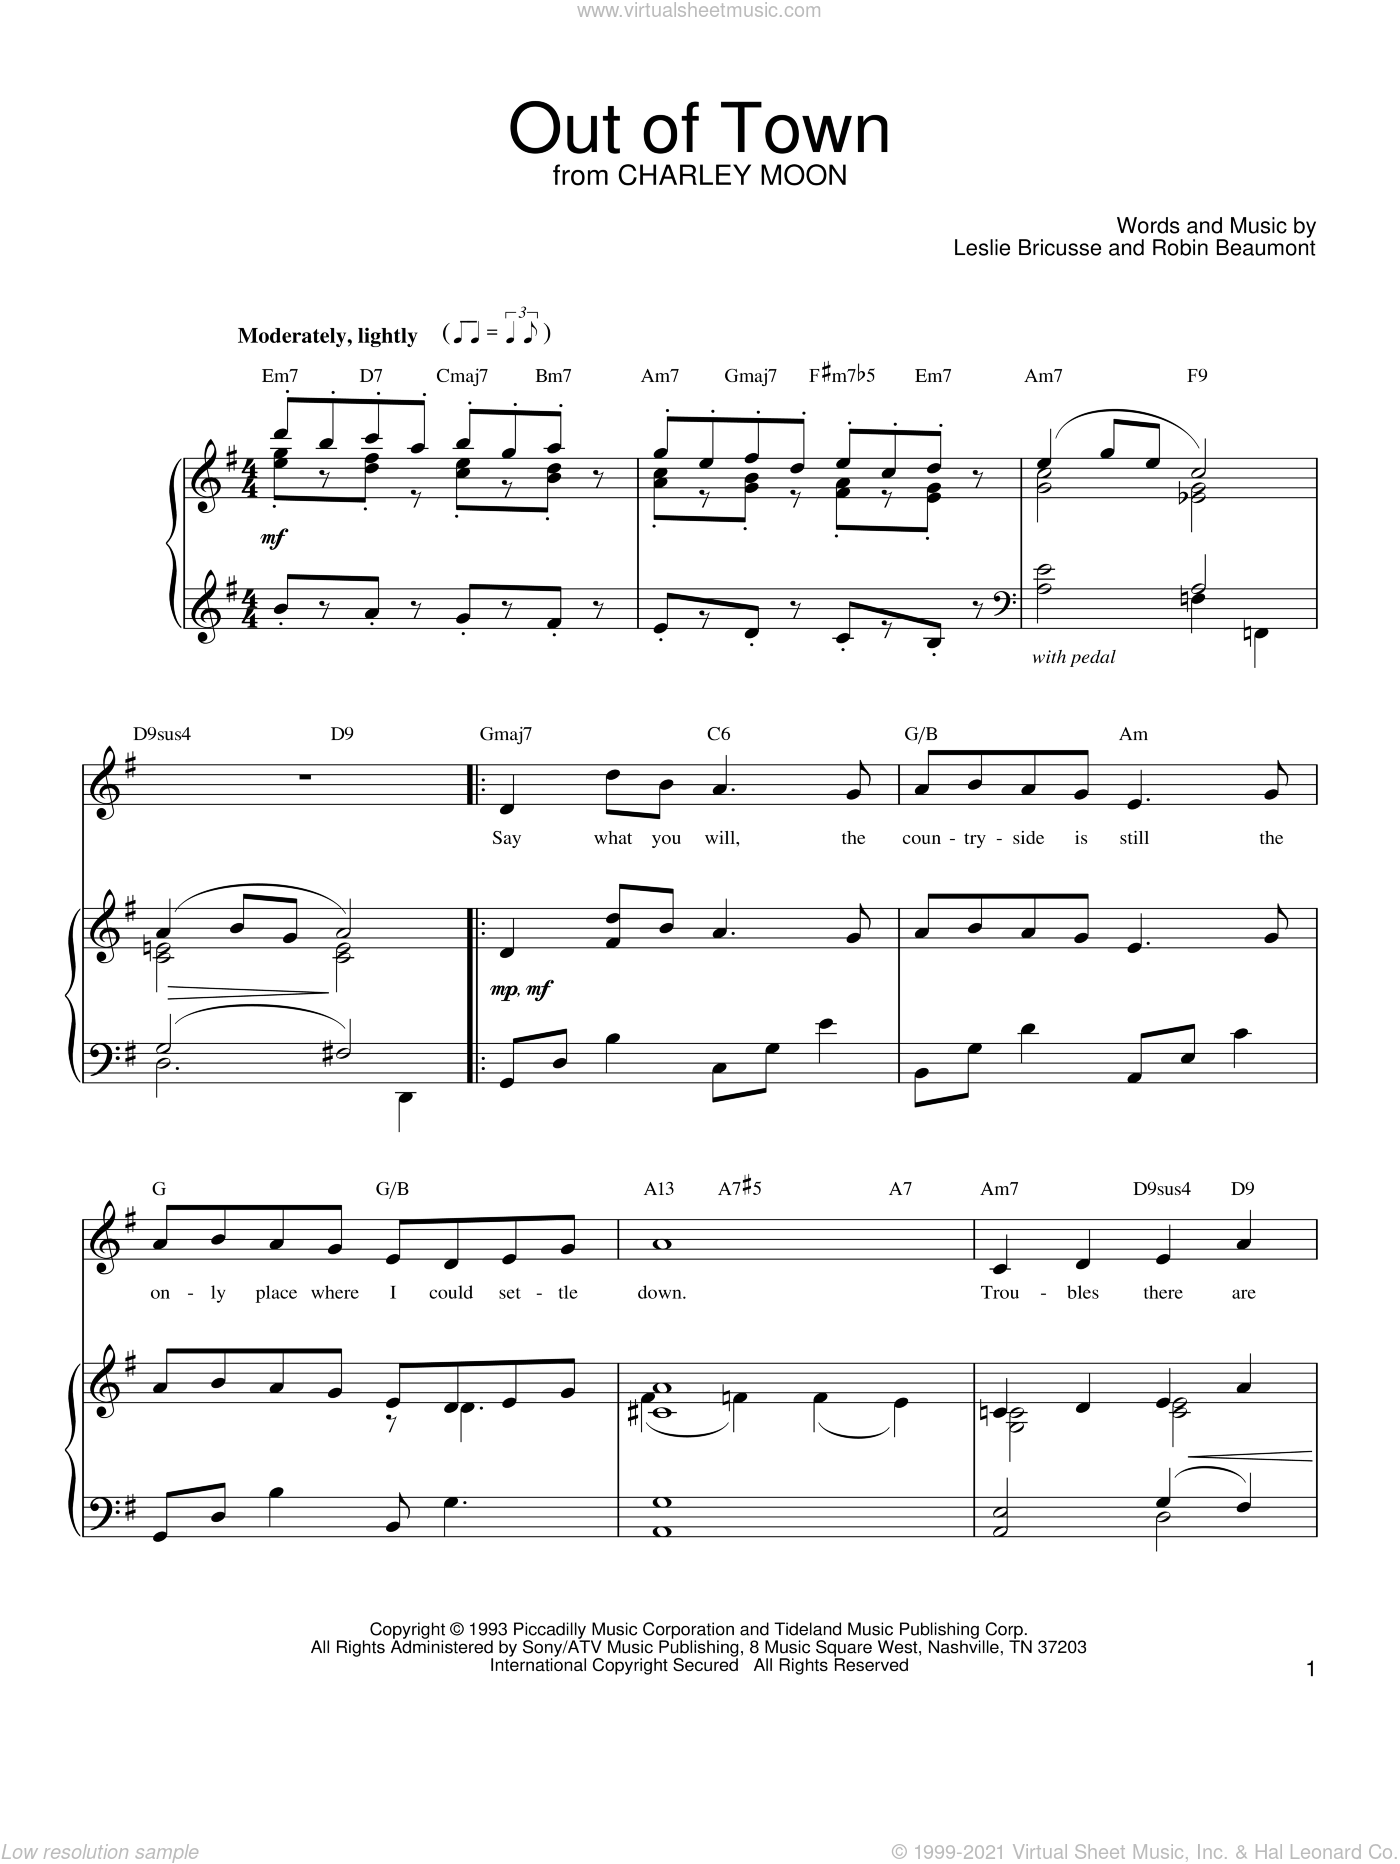 Out Of Town sheet music for voice, piano or guitar by Robin Beaumont and Leslie Bricusse. Score Image Preview.